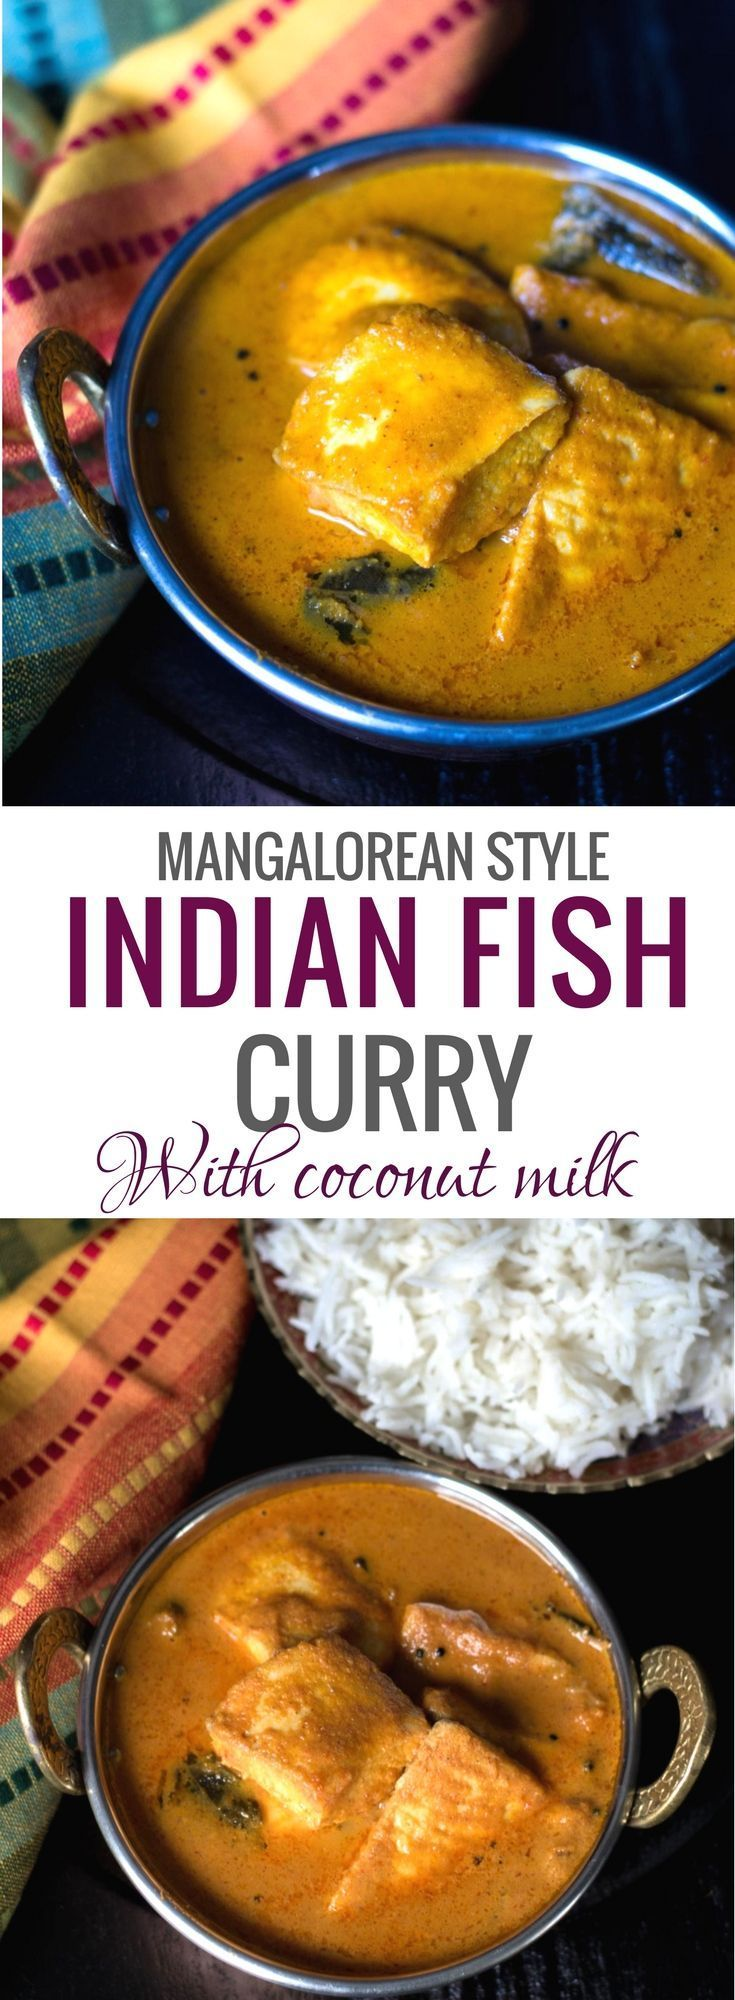 Indian fish curry with coconut milk - Amaze your family with your culinary skills when you serve them this tangy and flavorful fish curry Mangalorean Fish curry or as it's locally called, 'Meen Gassi'. #Indiancuisine #healthyindianrecipes #ethniccuisine #worldcuisine #indianfood via @simmertoslimmer